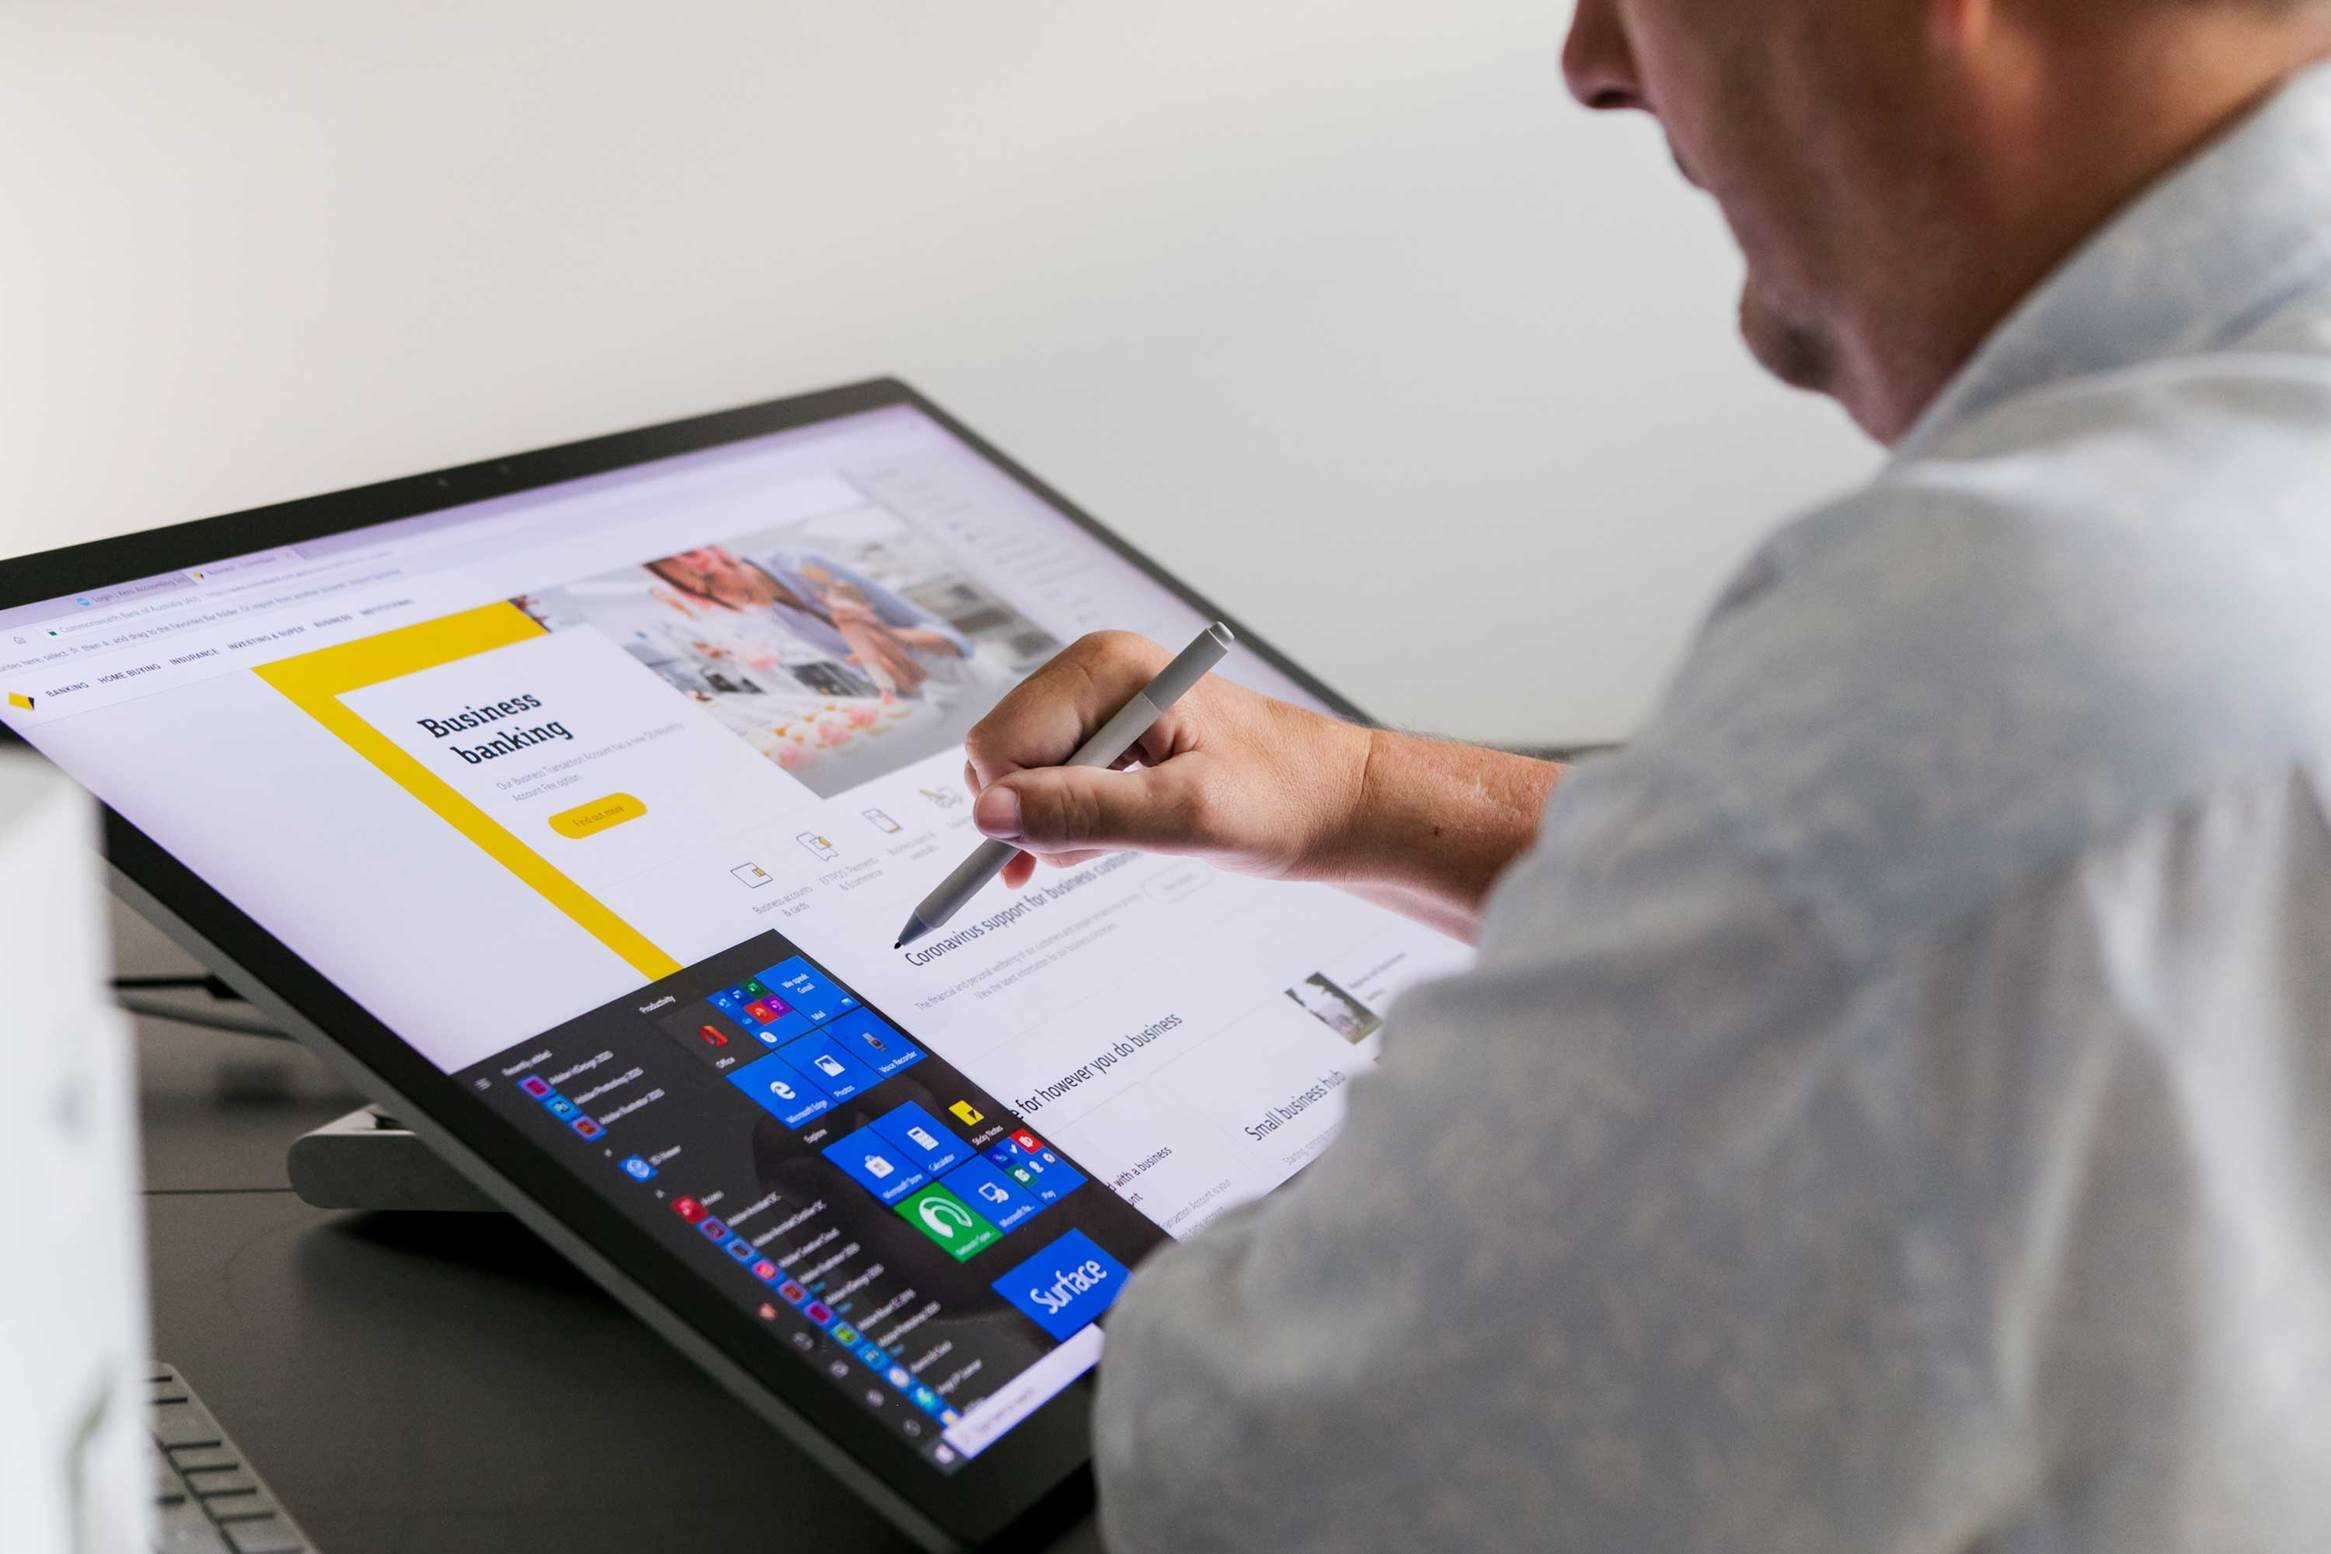 stock image of someone using a surface studio with a stylus